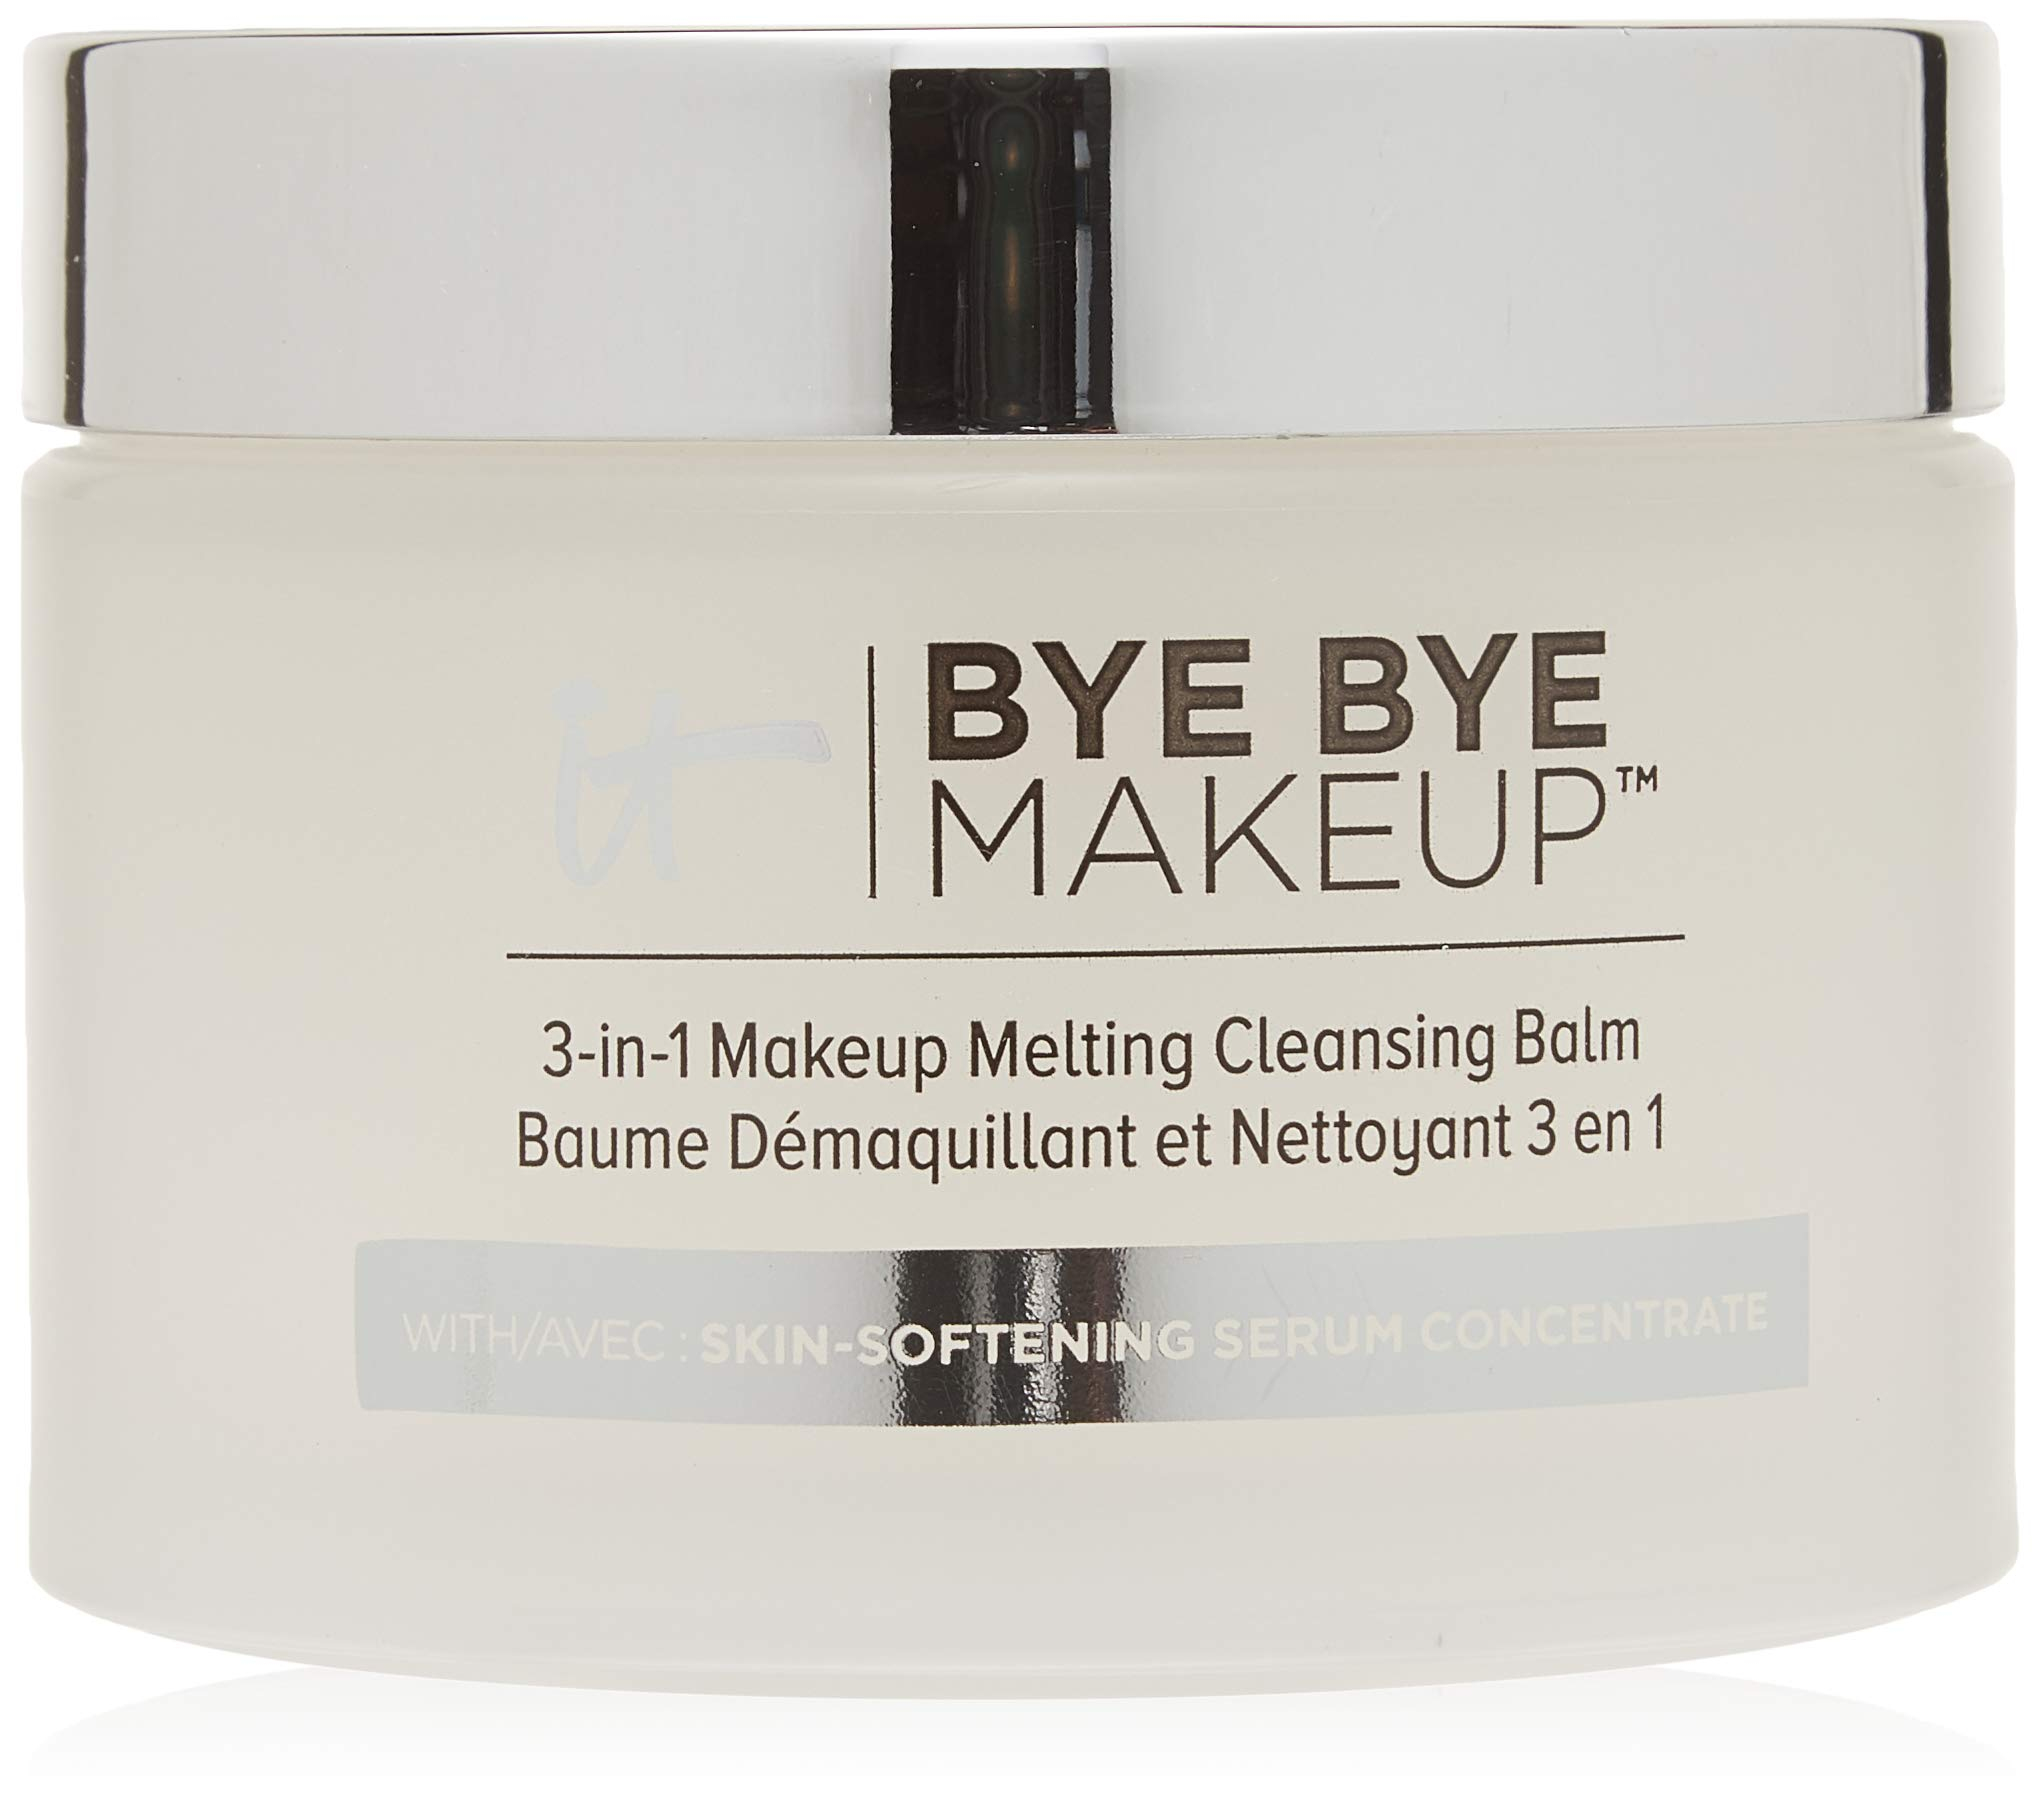 IT Cosmetics Bye Bye Makeup 3-in-1 Makeup Melting Cleansing Balm, 2.82 oz (80 g) by It Cosmetics